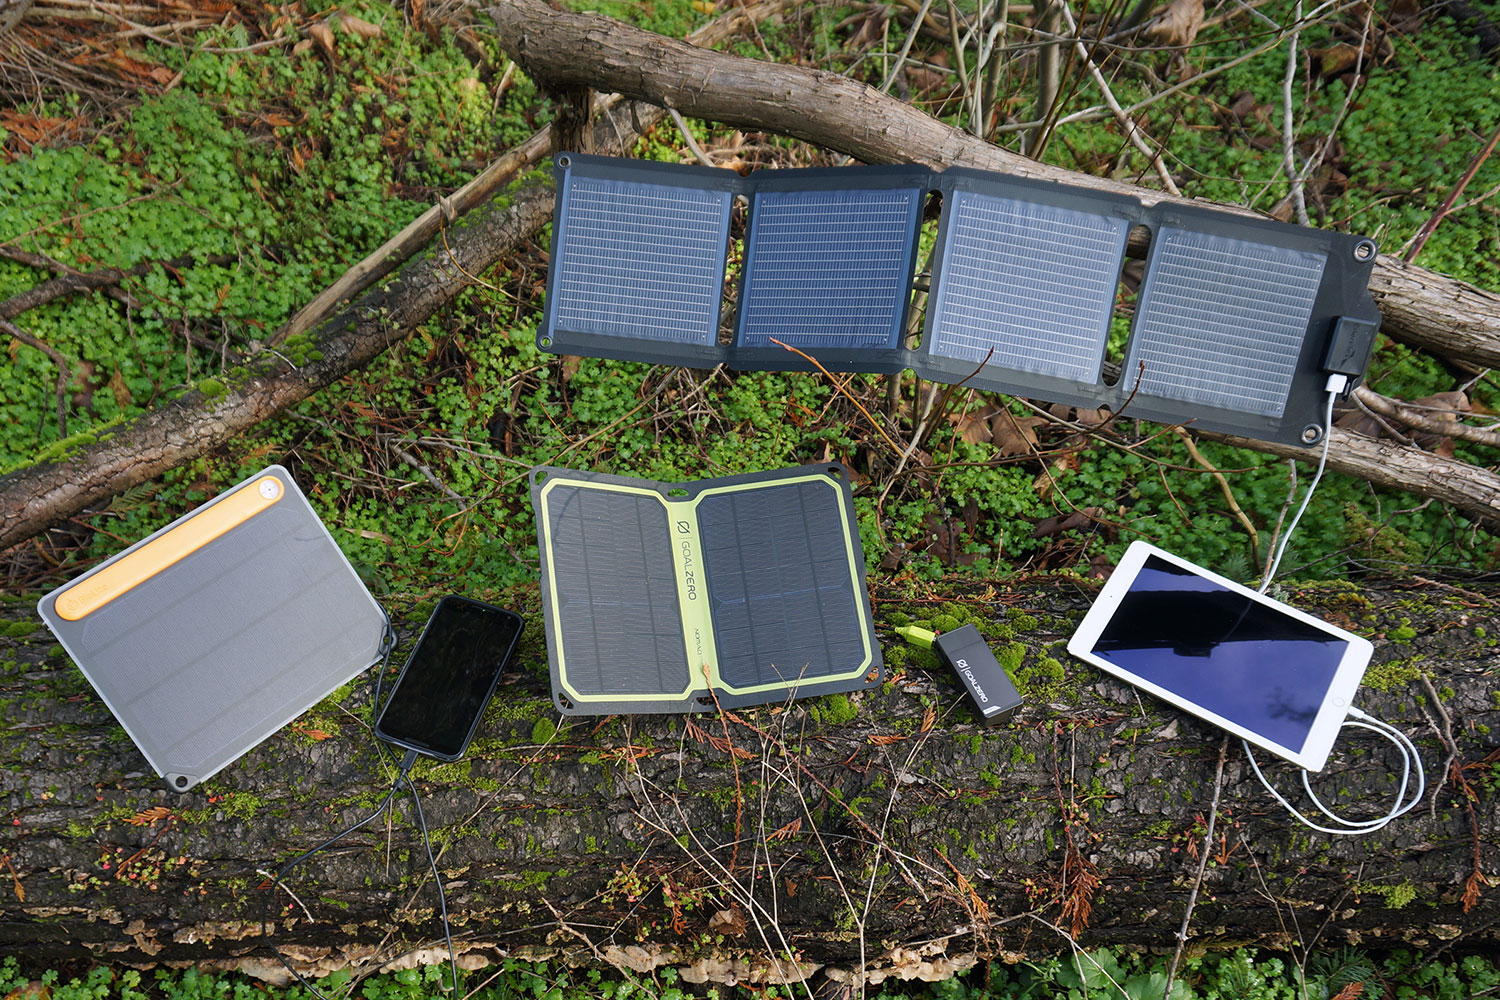 How To Choose A Solar Panel Charger For Backpacking